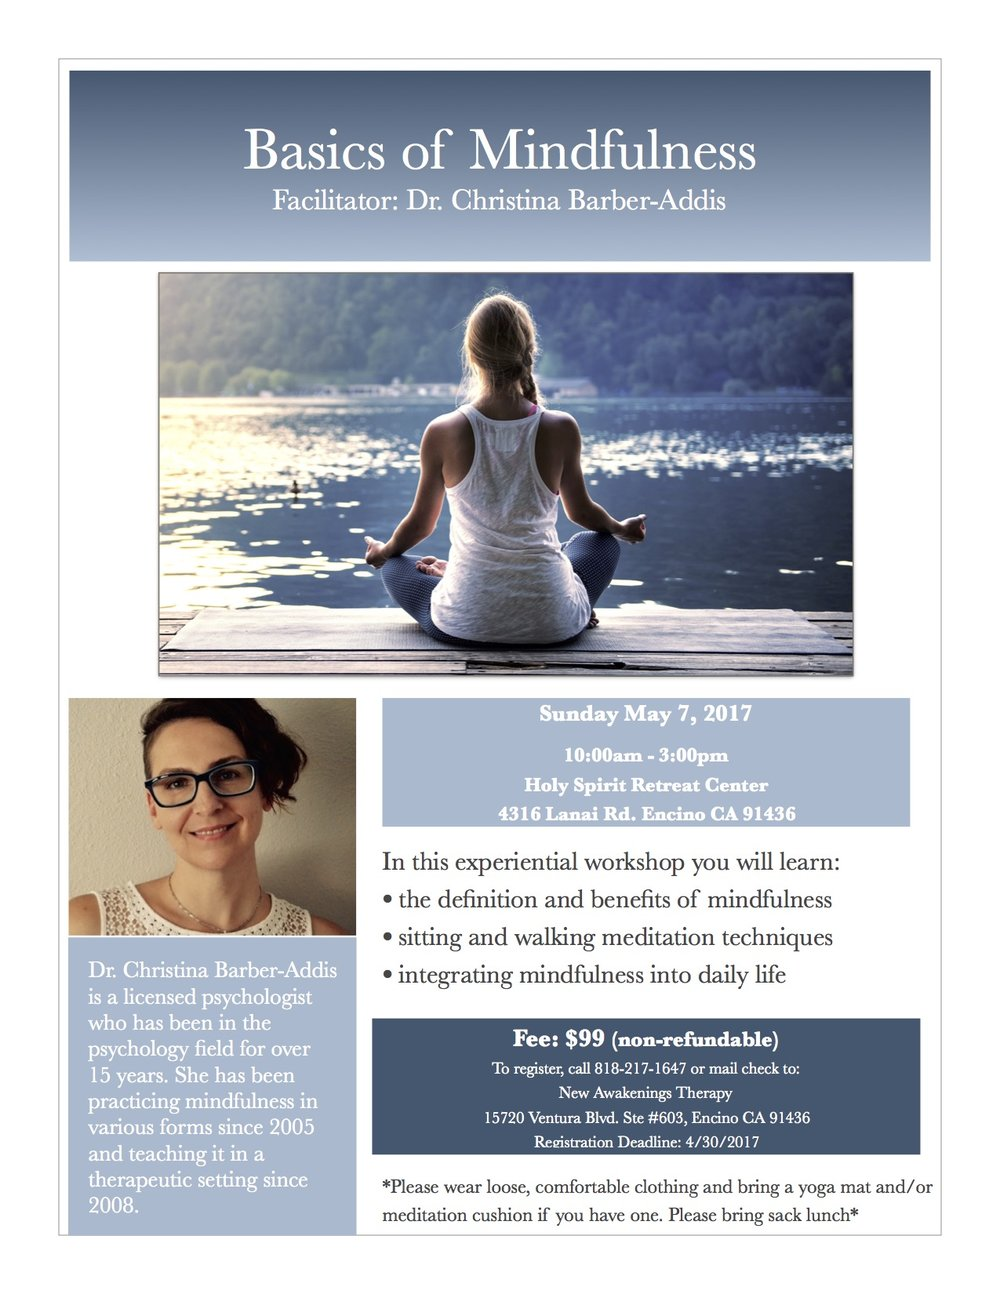 Mindfulness Workshop in Encino